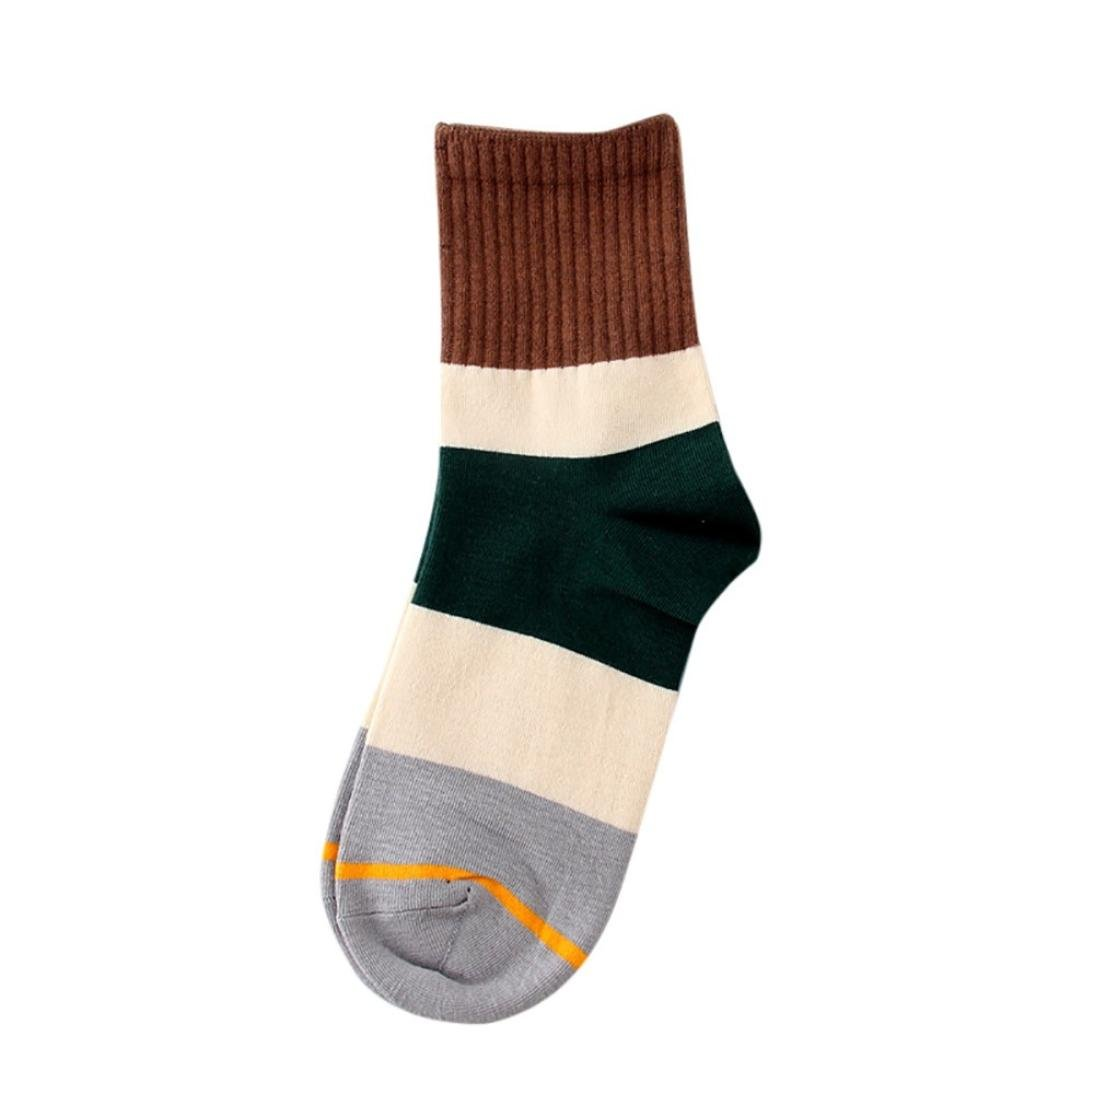 Paymenow Clearance Women Girls Contrast Color Striped Fashion Casual Funny Crew Sock (Coffee)